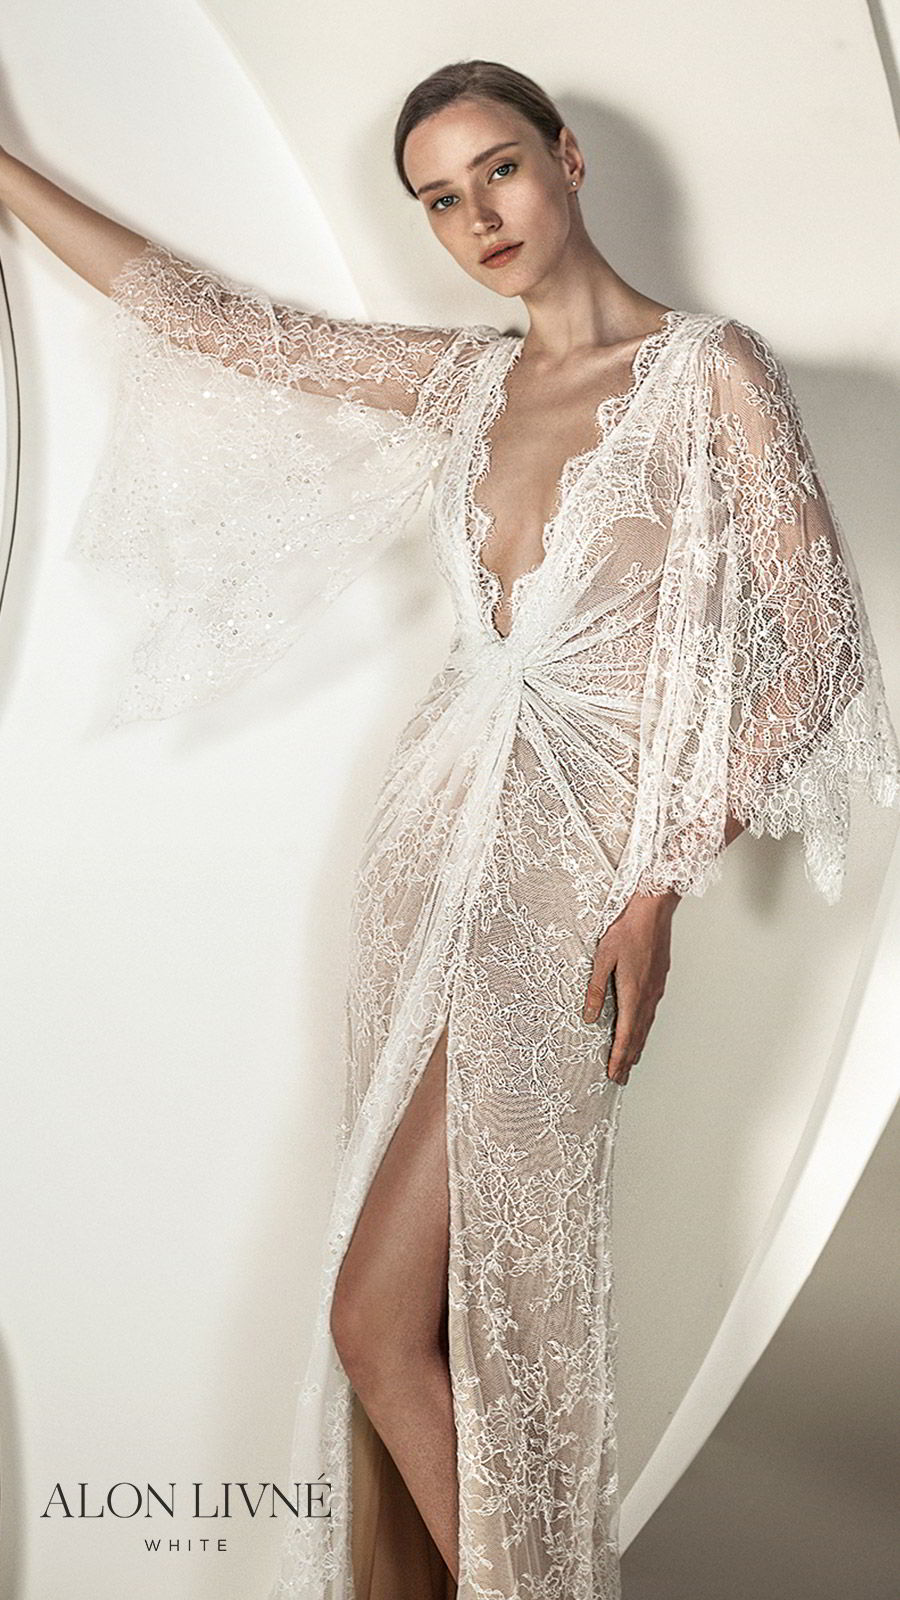 alon livne white spring 2020 bridal illusion 3 quarter flutter sleeves deep v neckline ruched bodice lace sheath kaftan wedding dress (kylie) slit skirt romantic boho chic mv